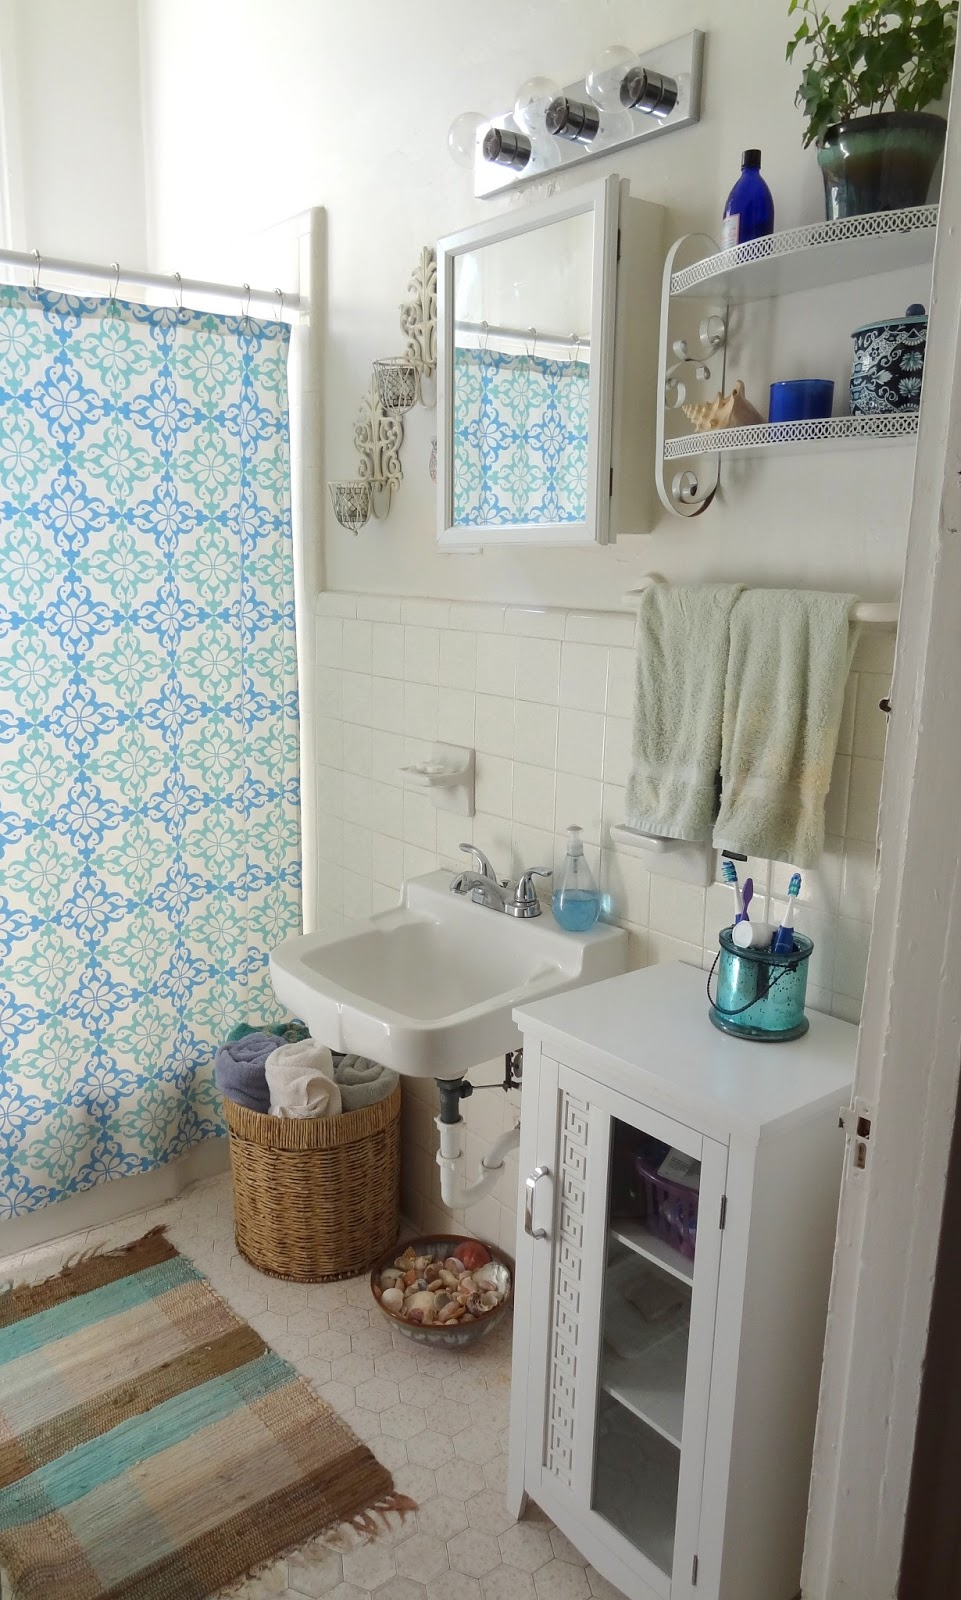 GYPSY YAYA: Beautiful Bohemian Bathrooms